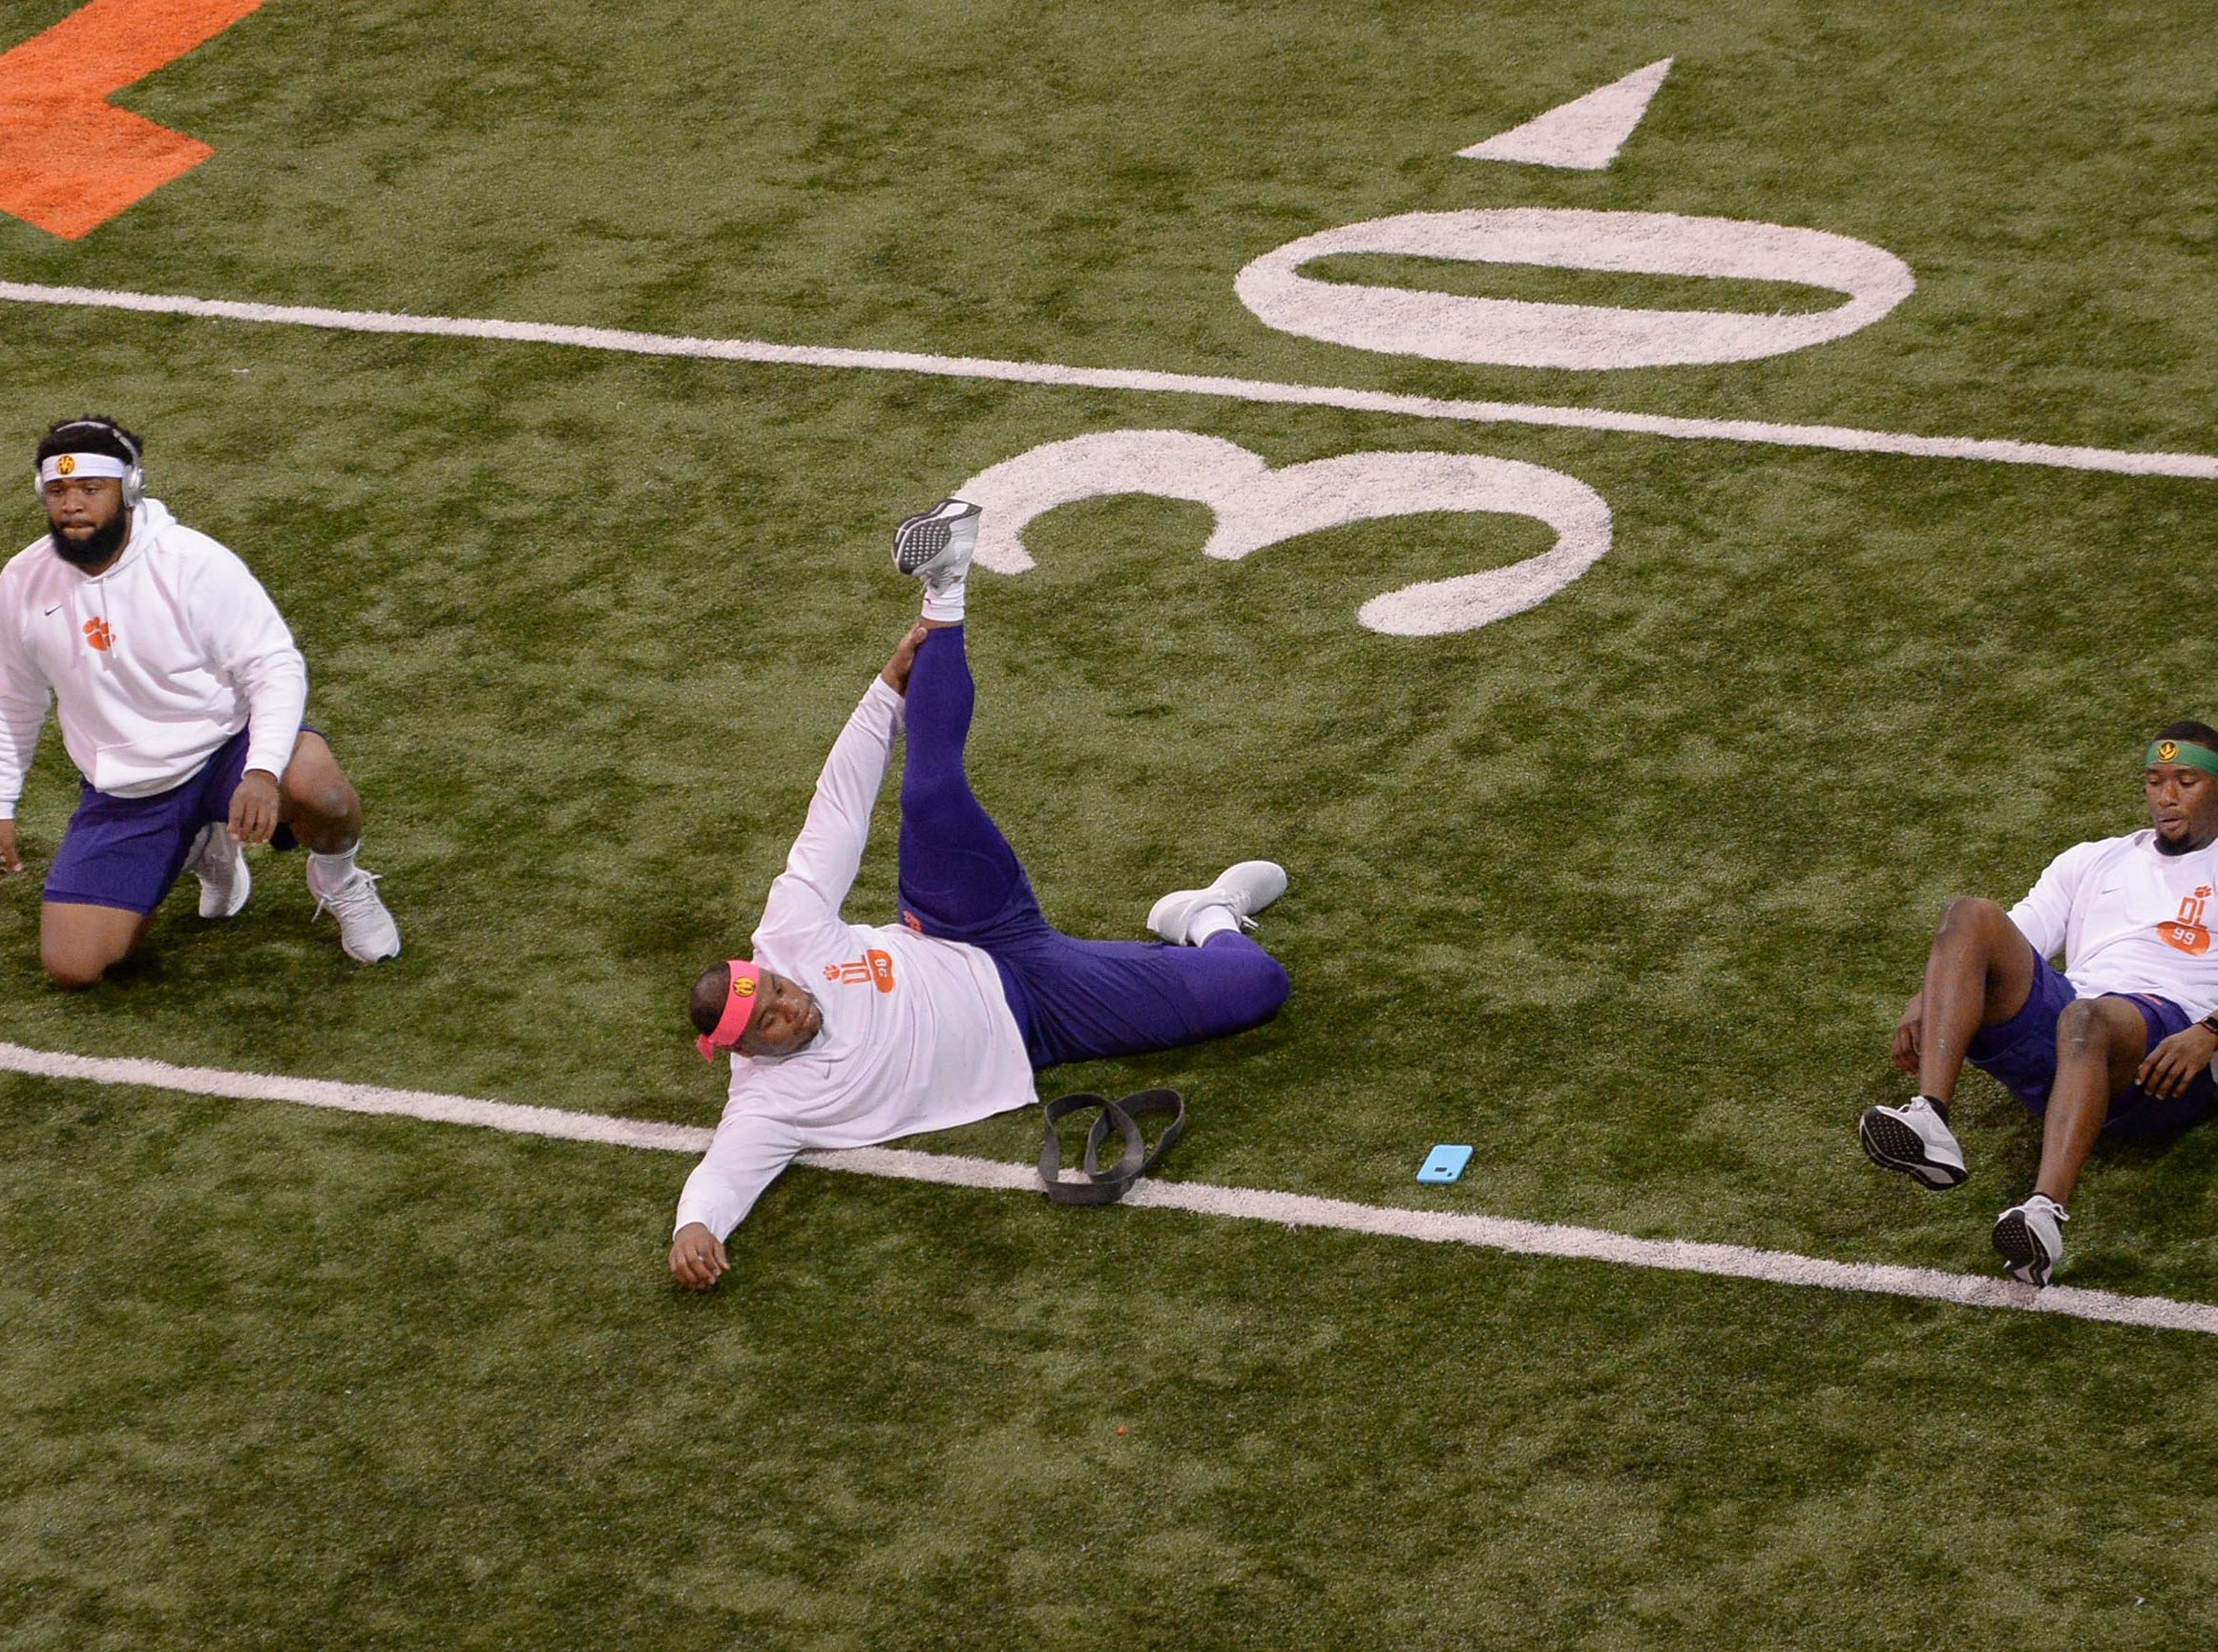 Defensive lineman Christian Wilkins, left, Defensive lineman Dexter Lawrence, and Defensive end Clelin Ferrell stretch before Clemson pro day at the Poe Indoor Facility in Clemson Thursday, March 14, 2019.